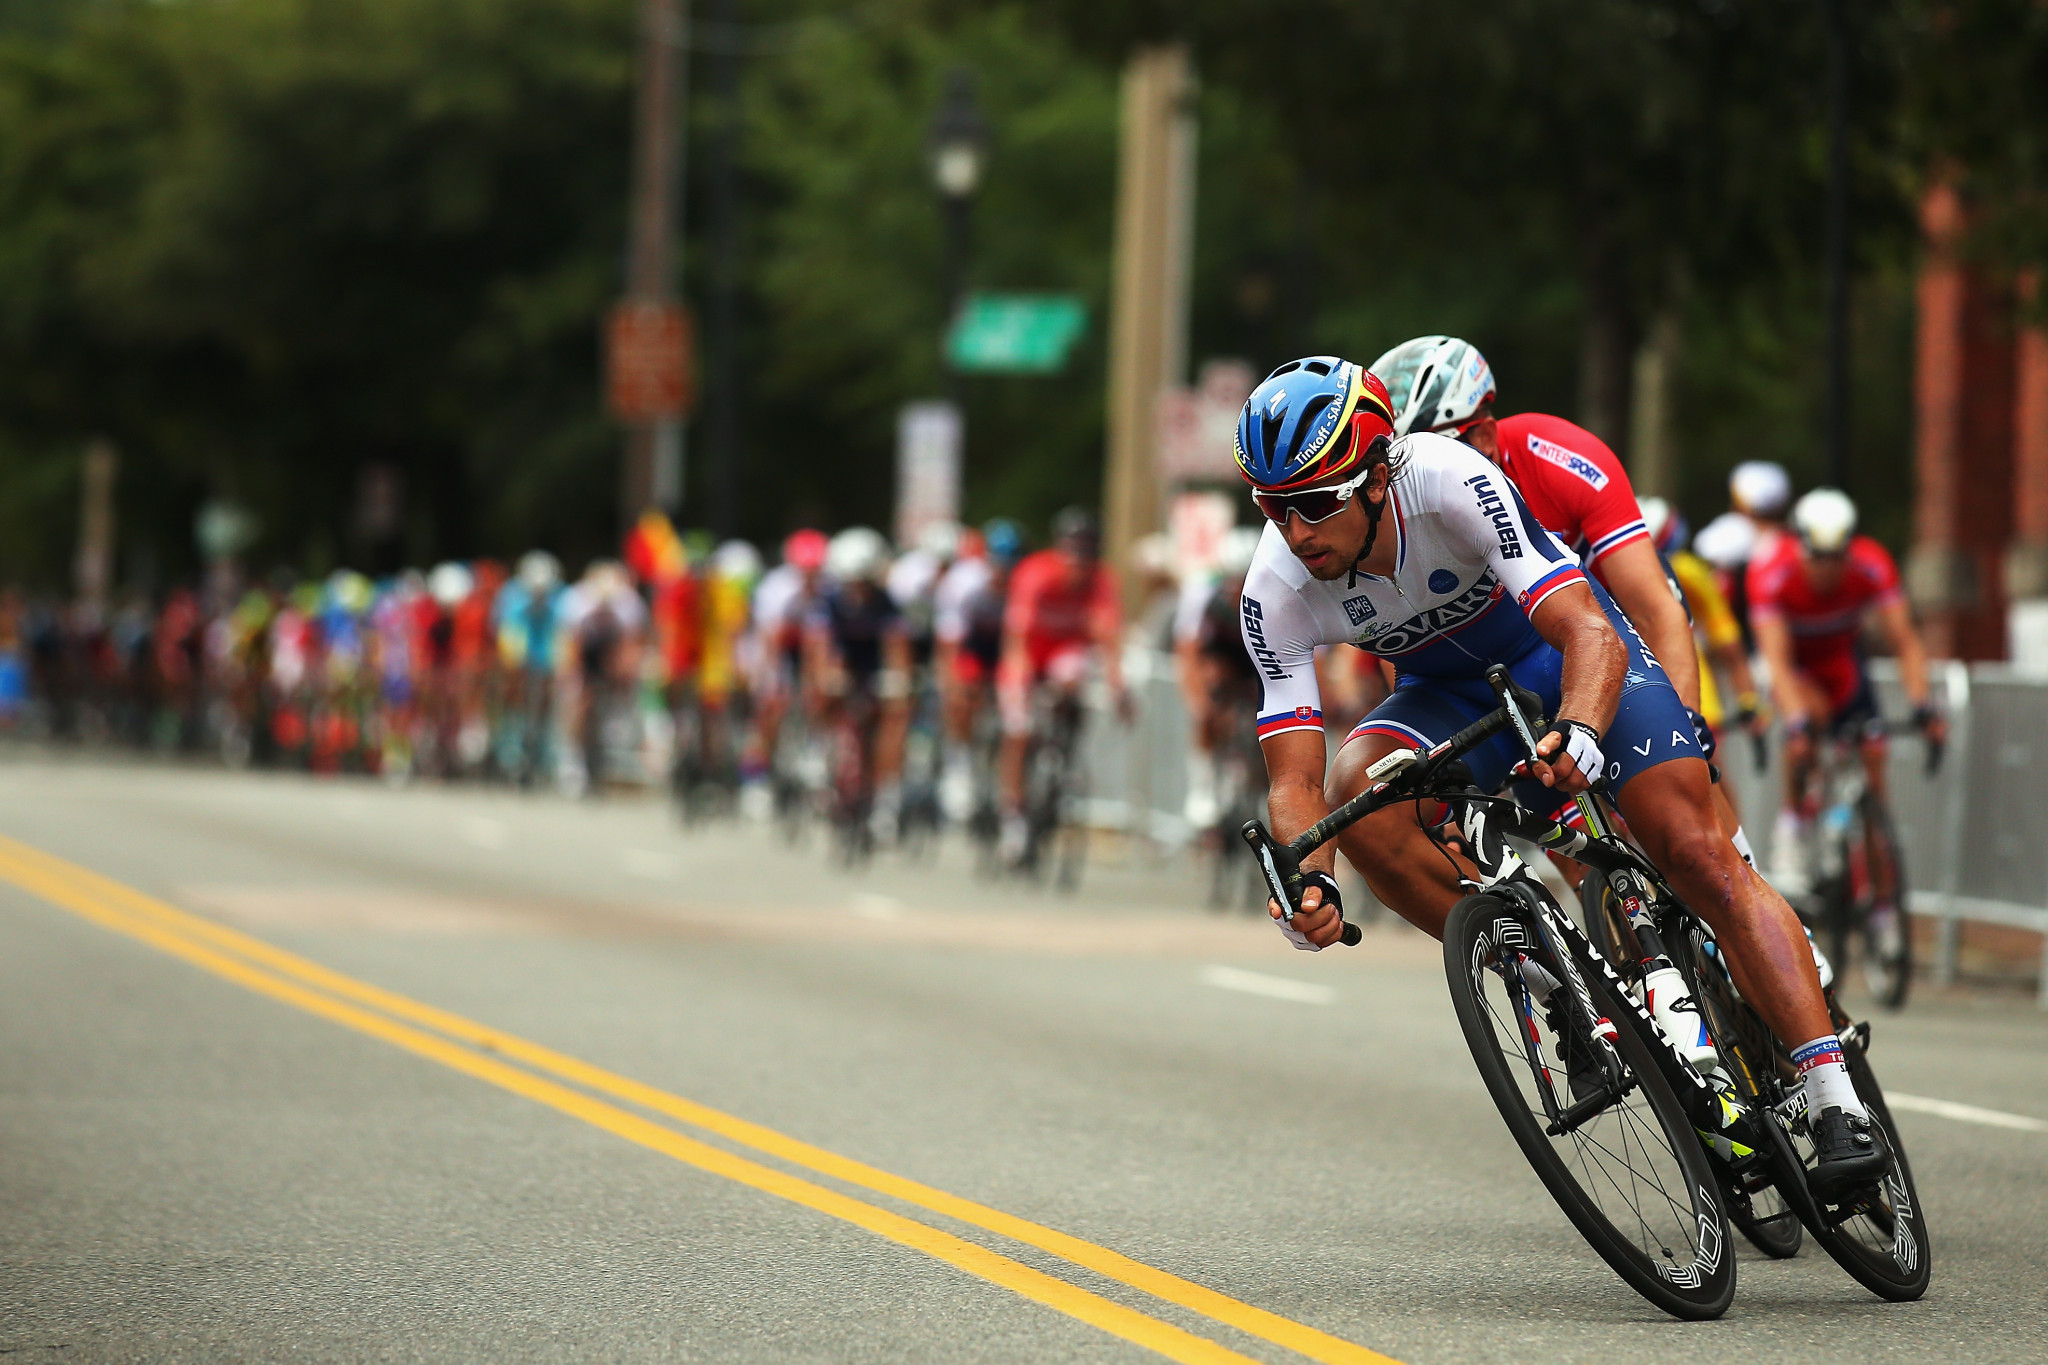 Portland eyes hosting of future UCI Road World Championships